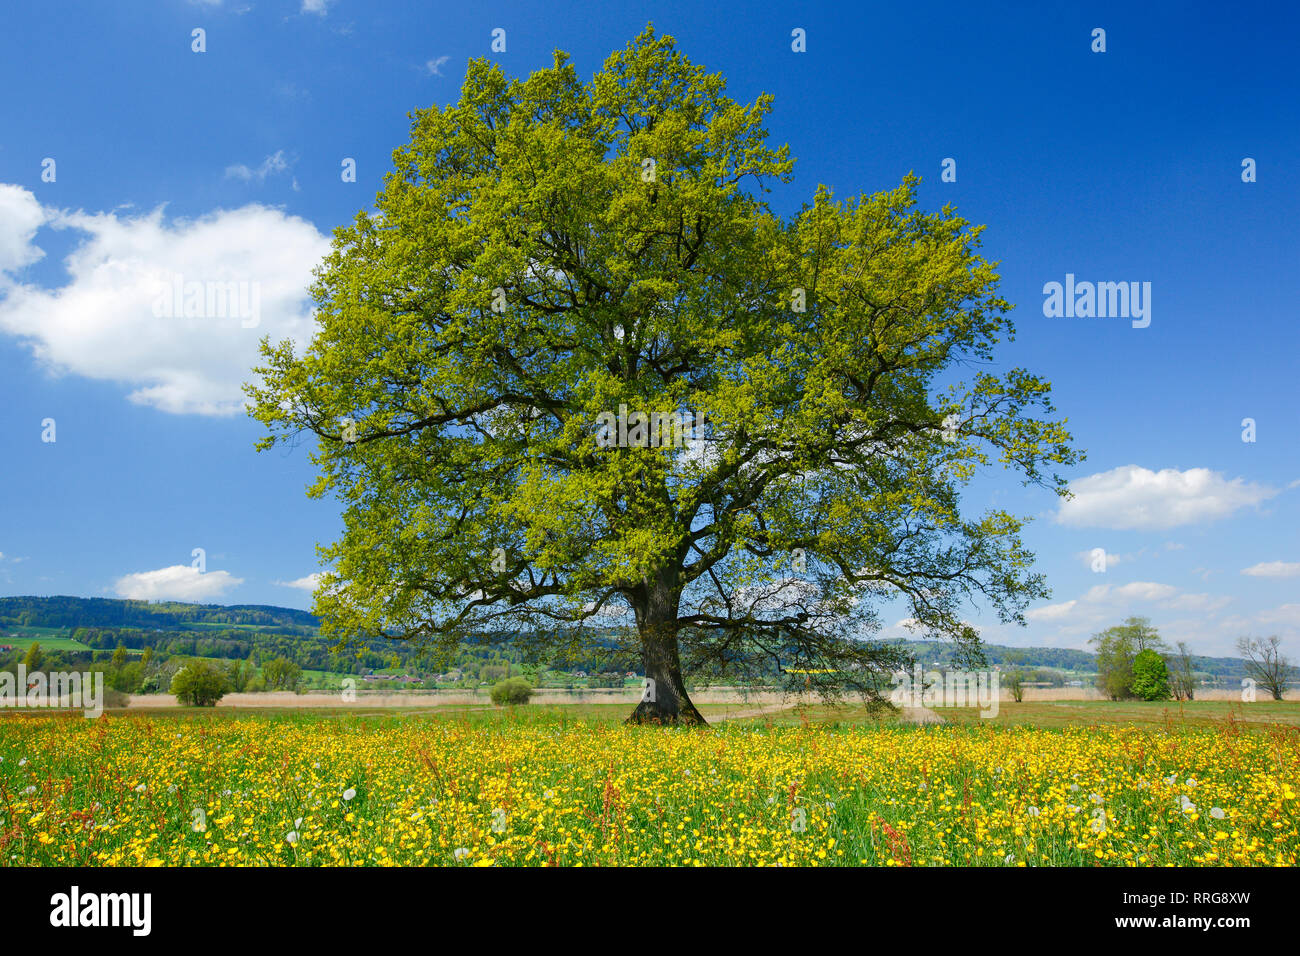 botany, oak, Greifensee (Lake Greifen), Zurich, Switzerland, Additional-Rights-Clearance-Info-Not-Available - Stock Image